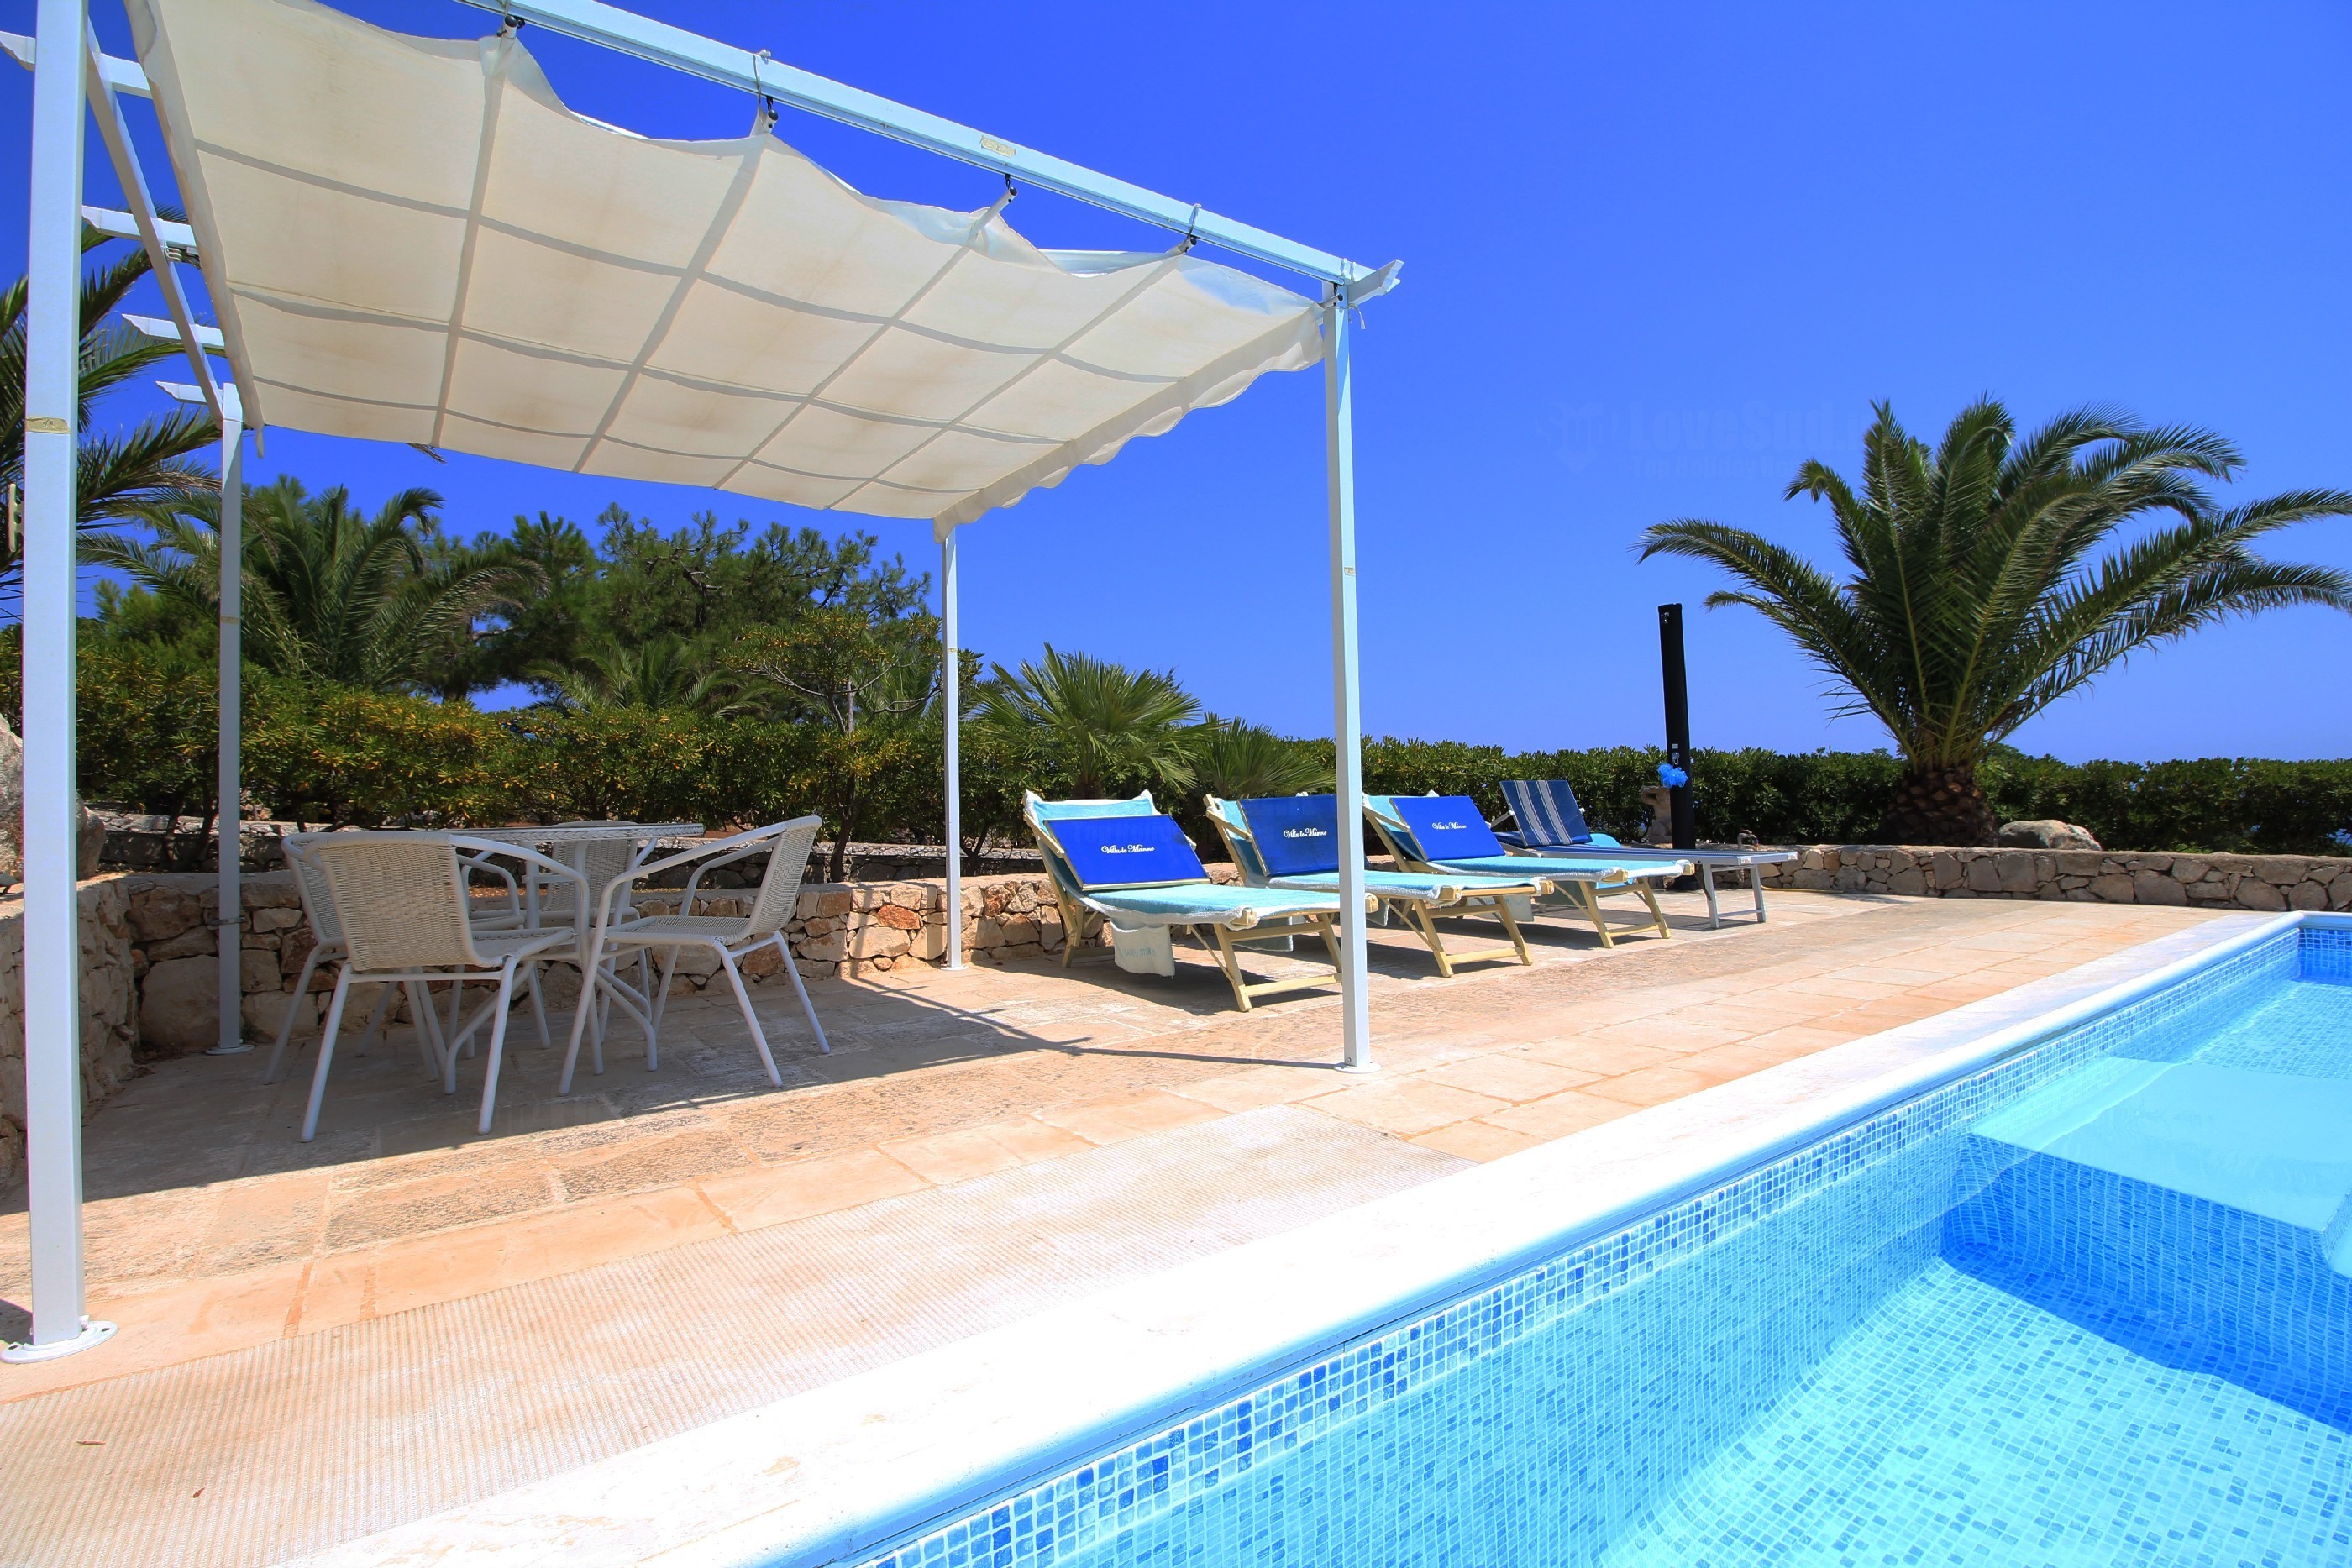 Apartment Stella Marina luxe pool home photo 20372289